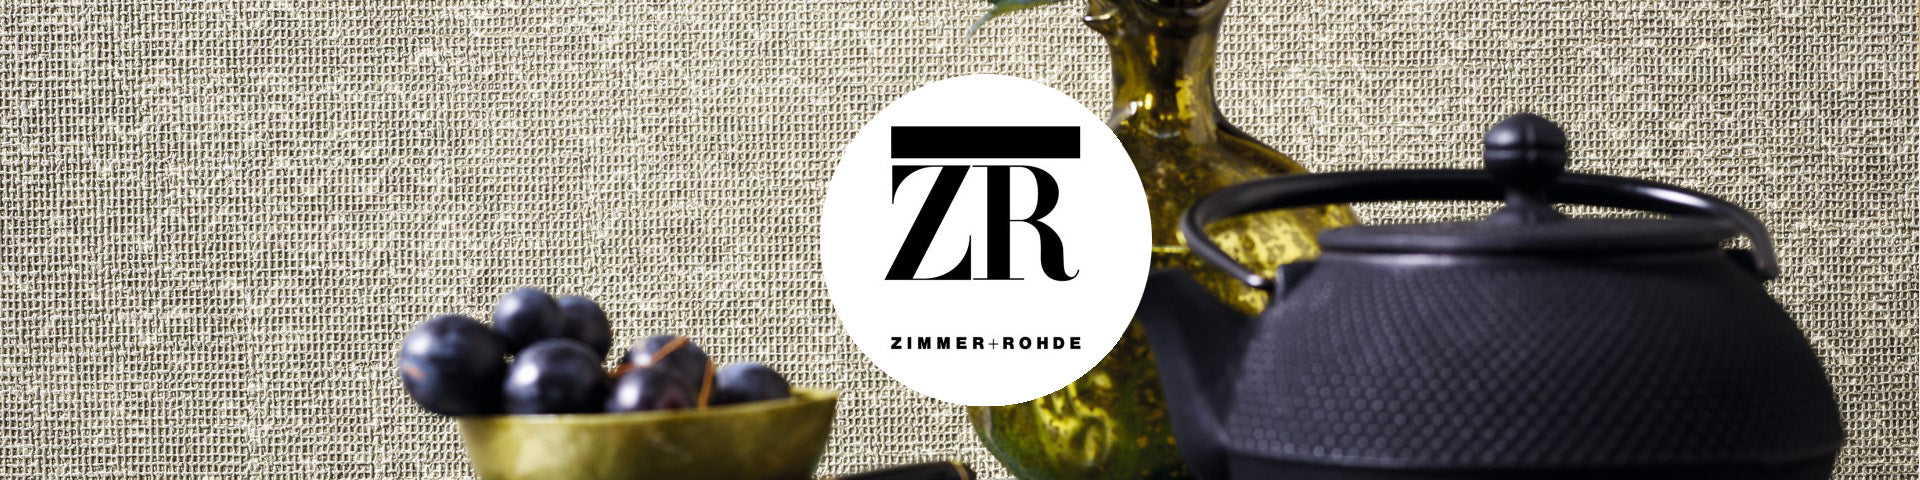 Zimmer + Rohde wallpaper behang